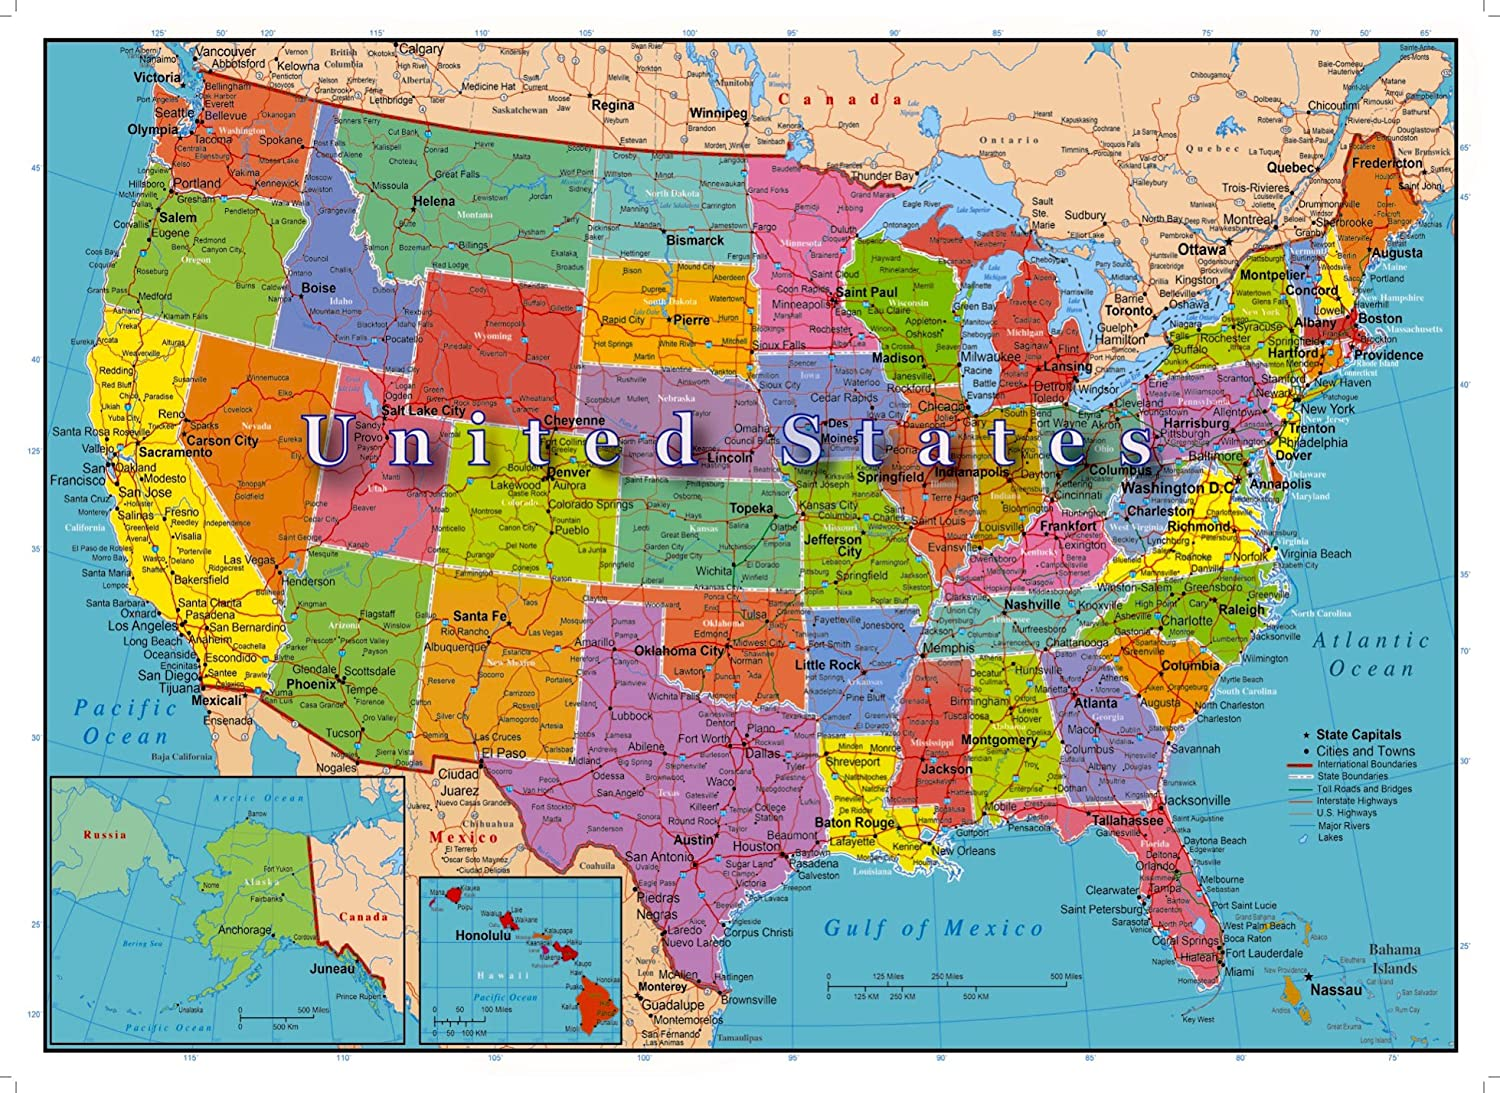 United State Of America Map.United States Of America Map 1000 Piece Jigsaw Puzzle Highways Rivers State Capitals